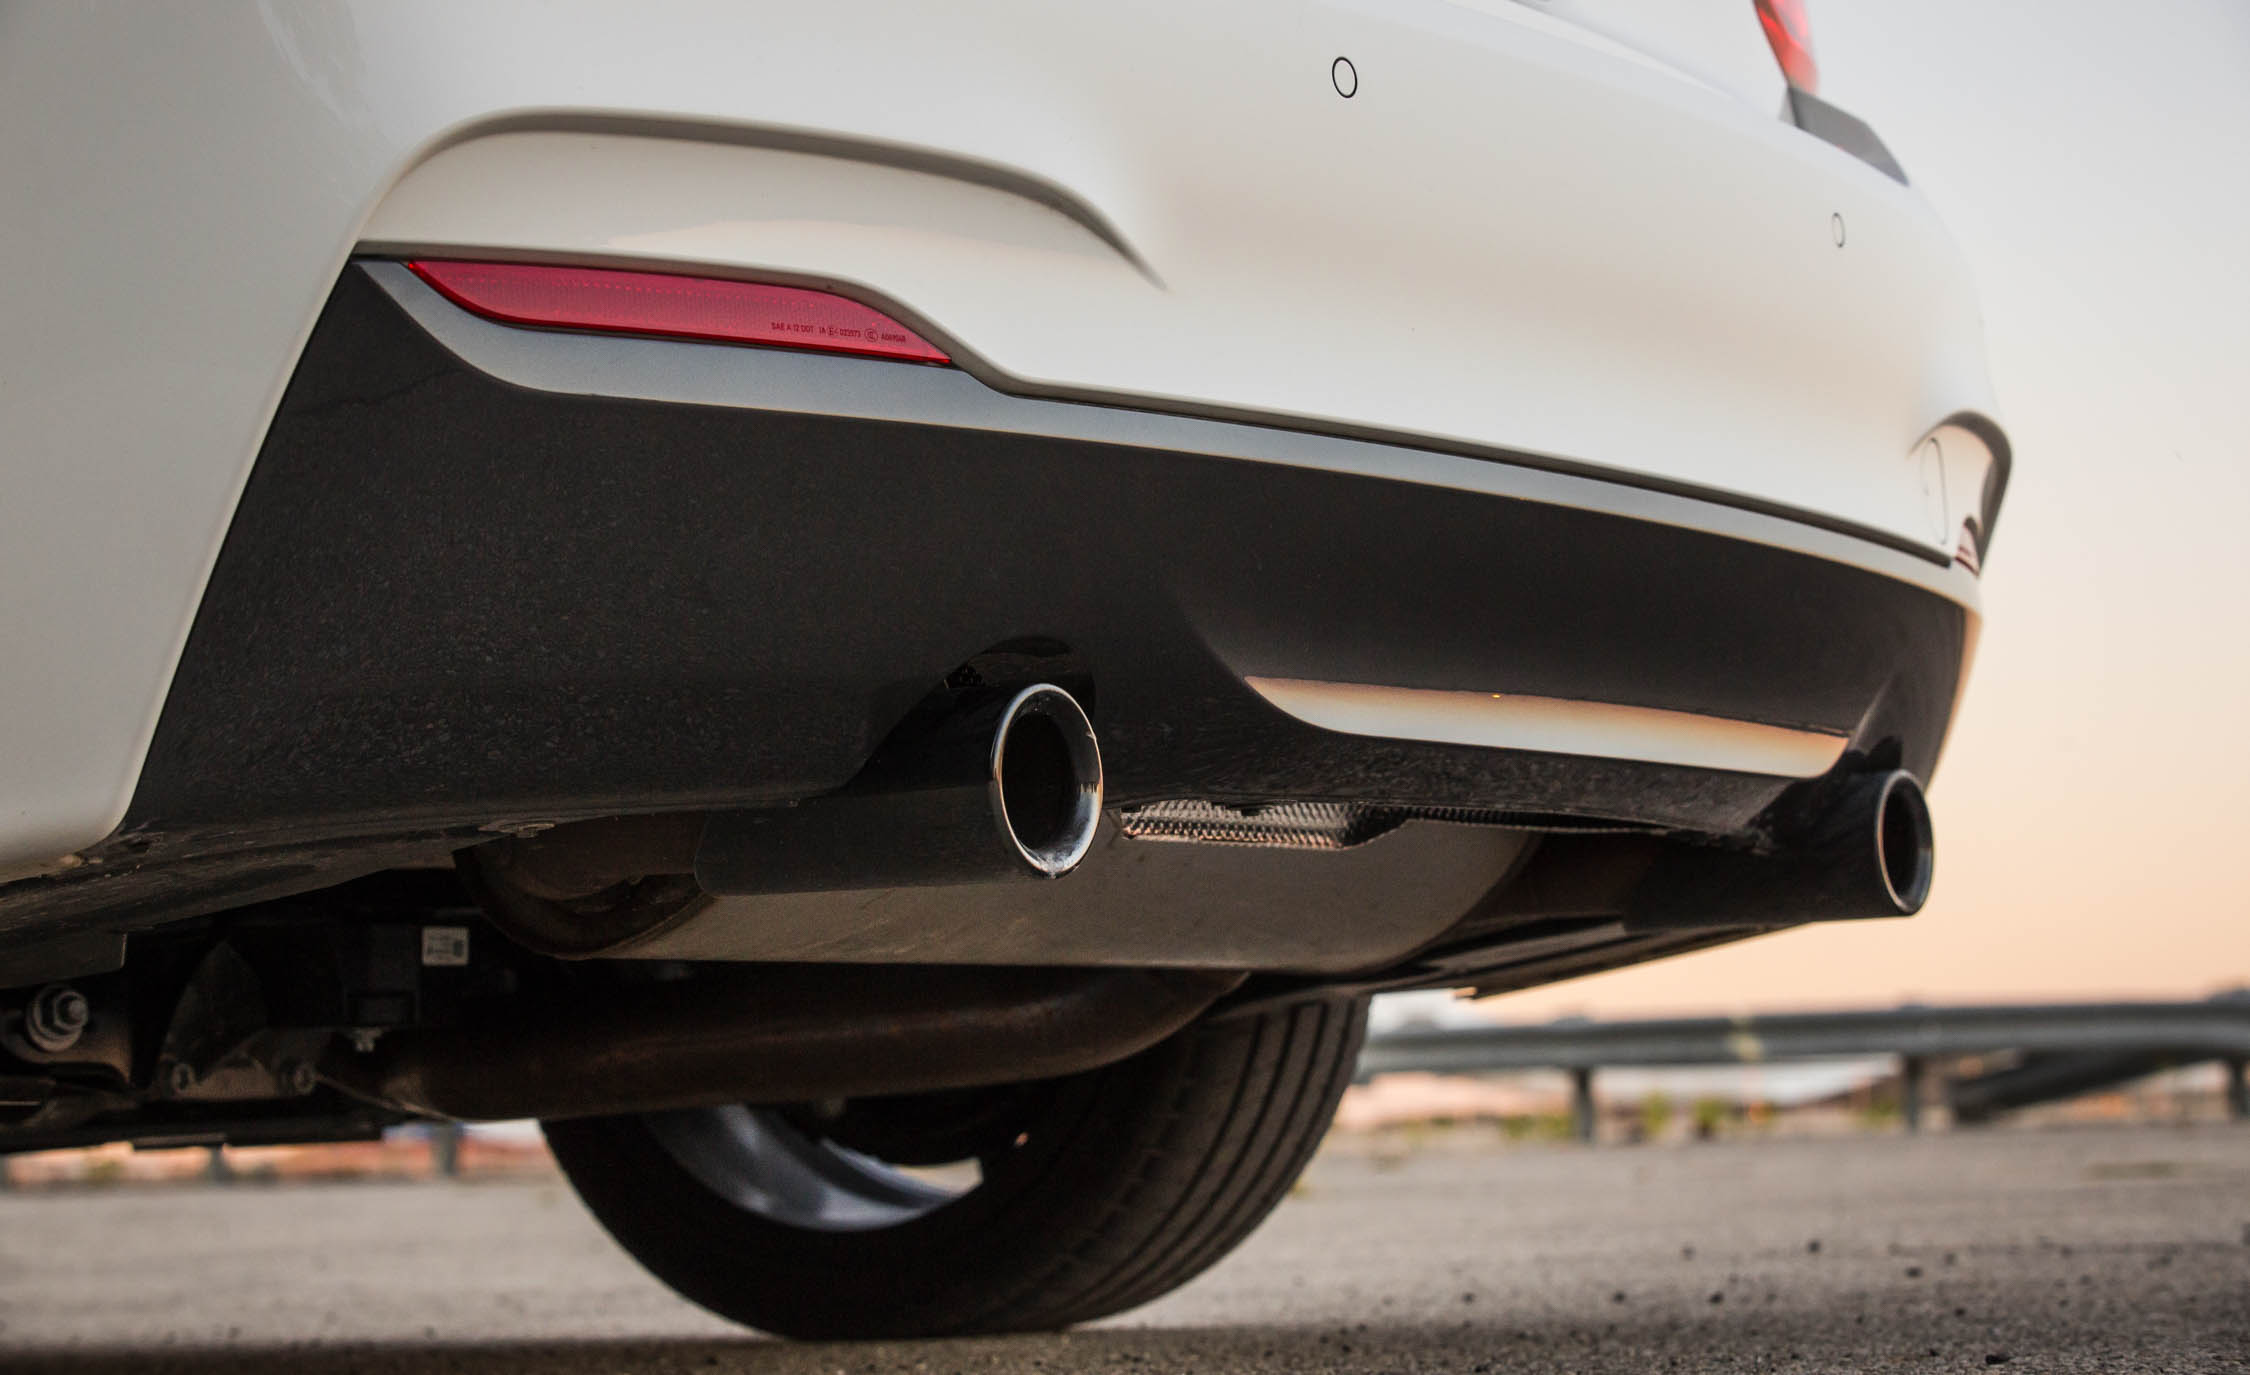 2017 BMW M240i Coupe Automatic Exterior View Rear Bumper And Exhaust Pipe (Photo 25 of 36)